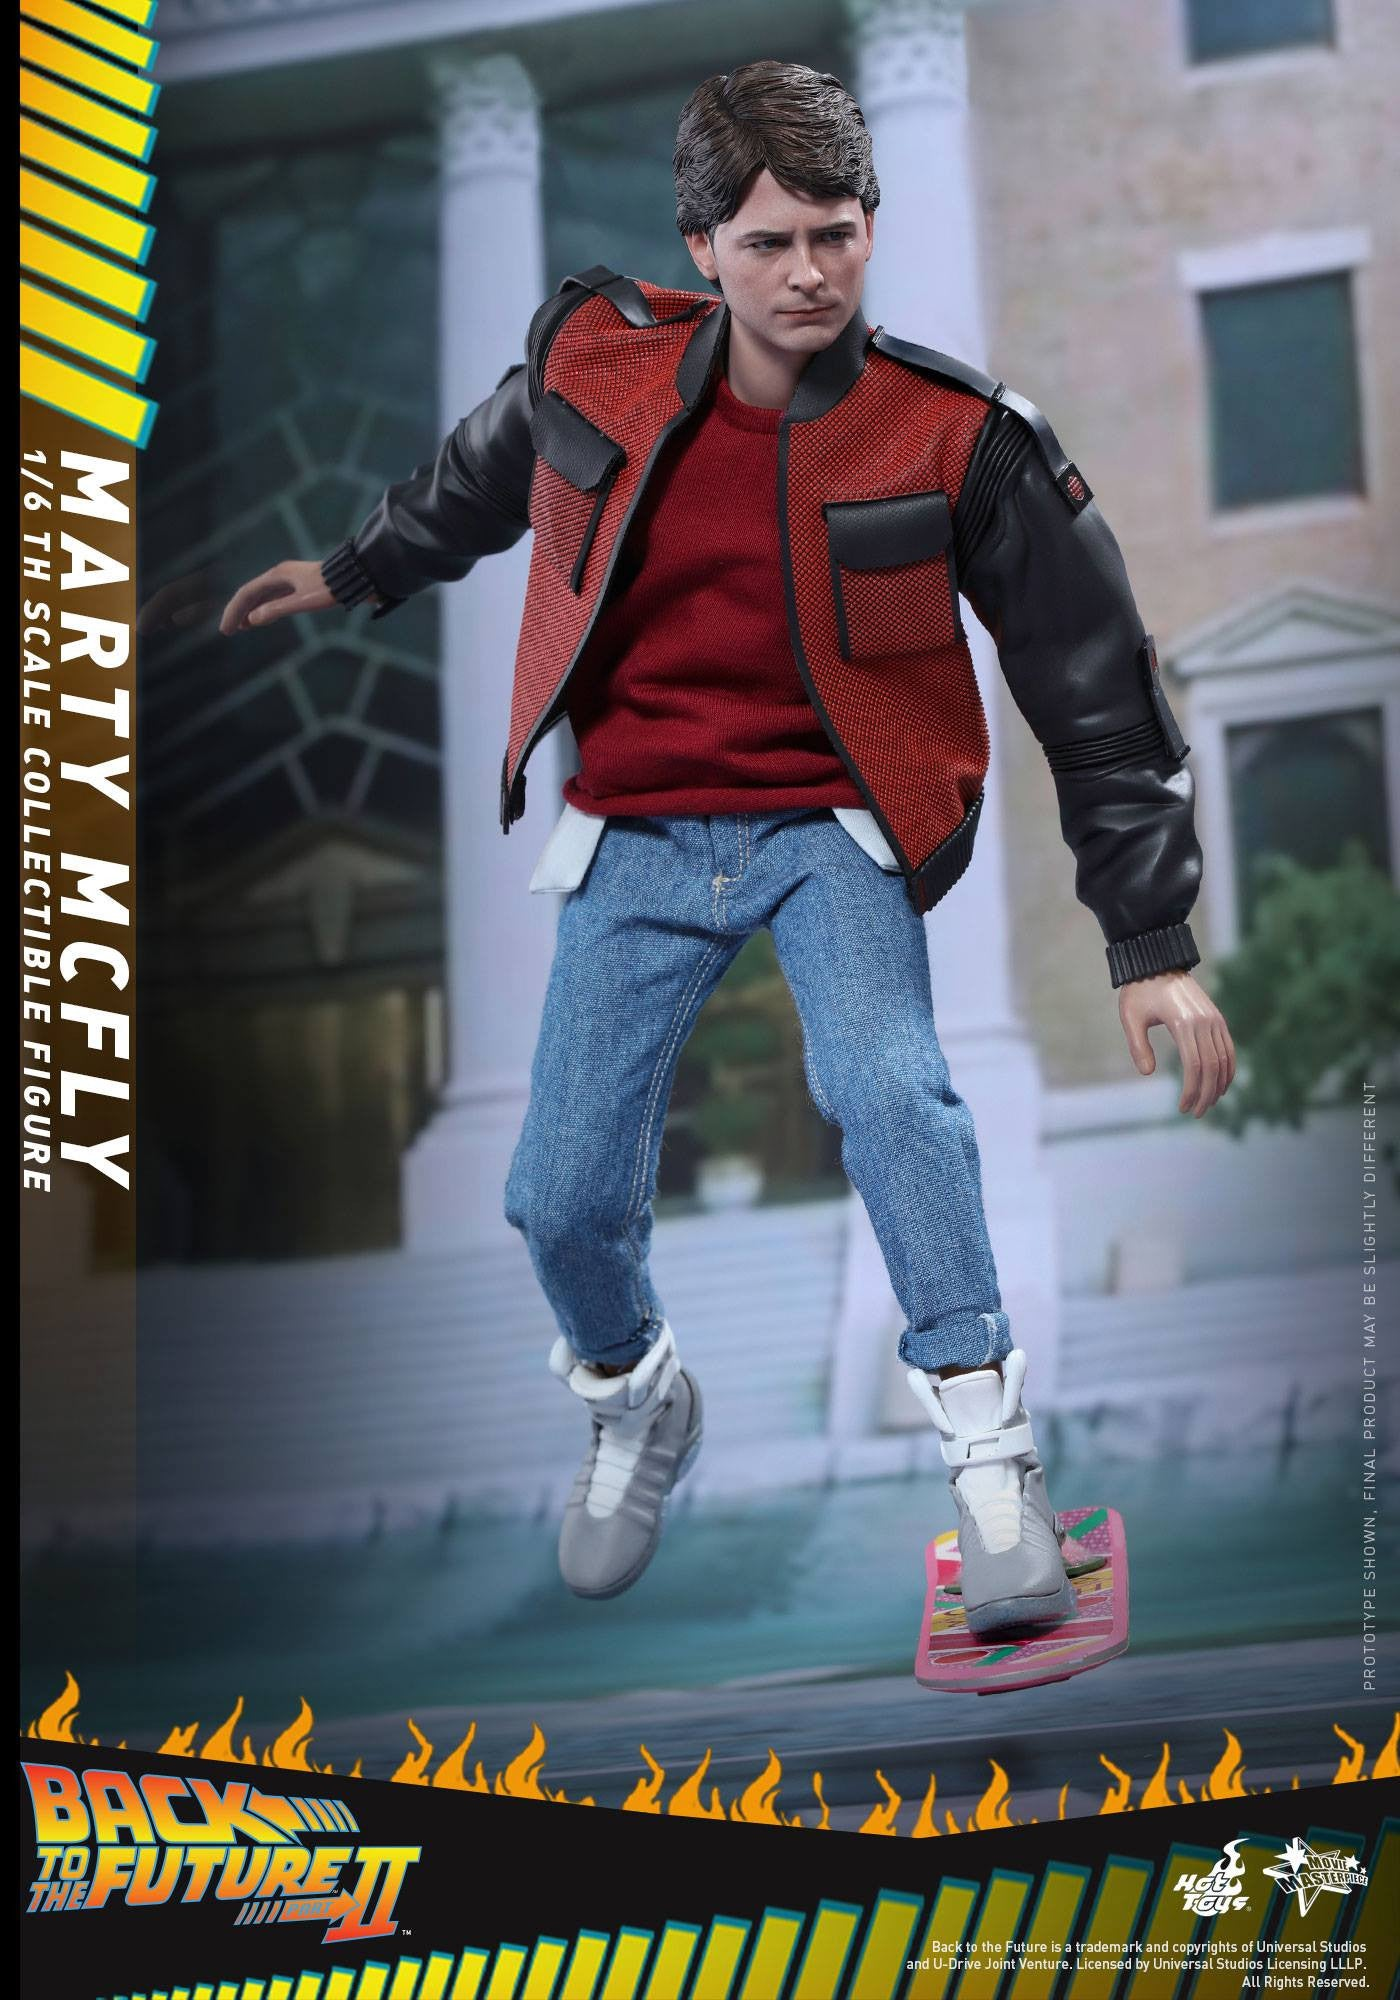 Hot Toys - MMS379 - Back to The Future Part II - Marty McFly (Normal Edition) - Marvelous Toys - 16